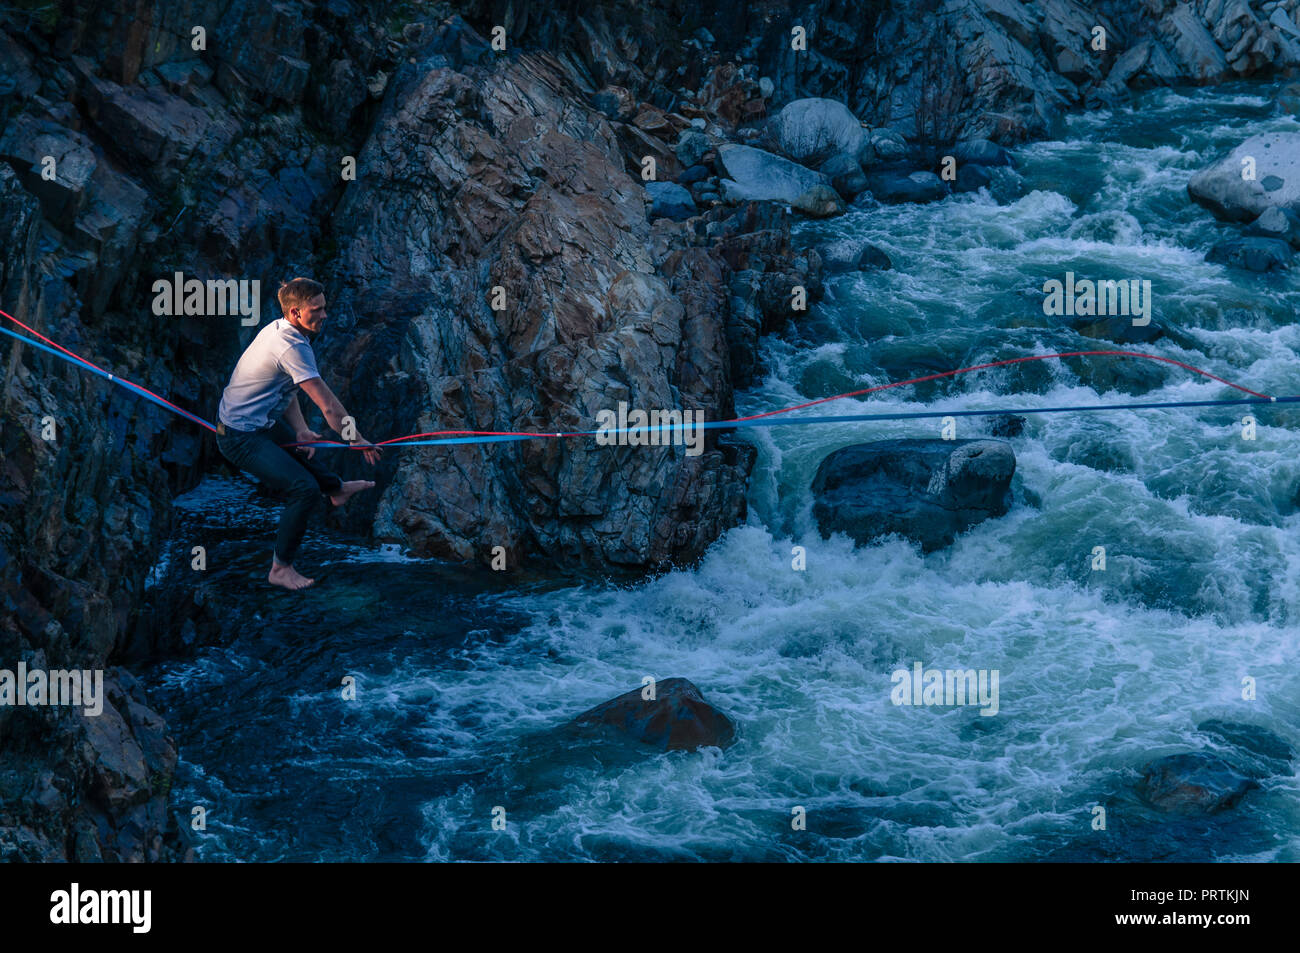 Man highlining above river, Truckee, California, USA - Stock Image